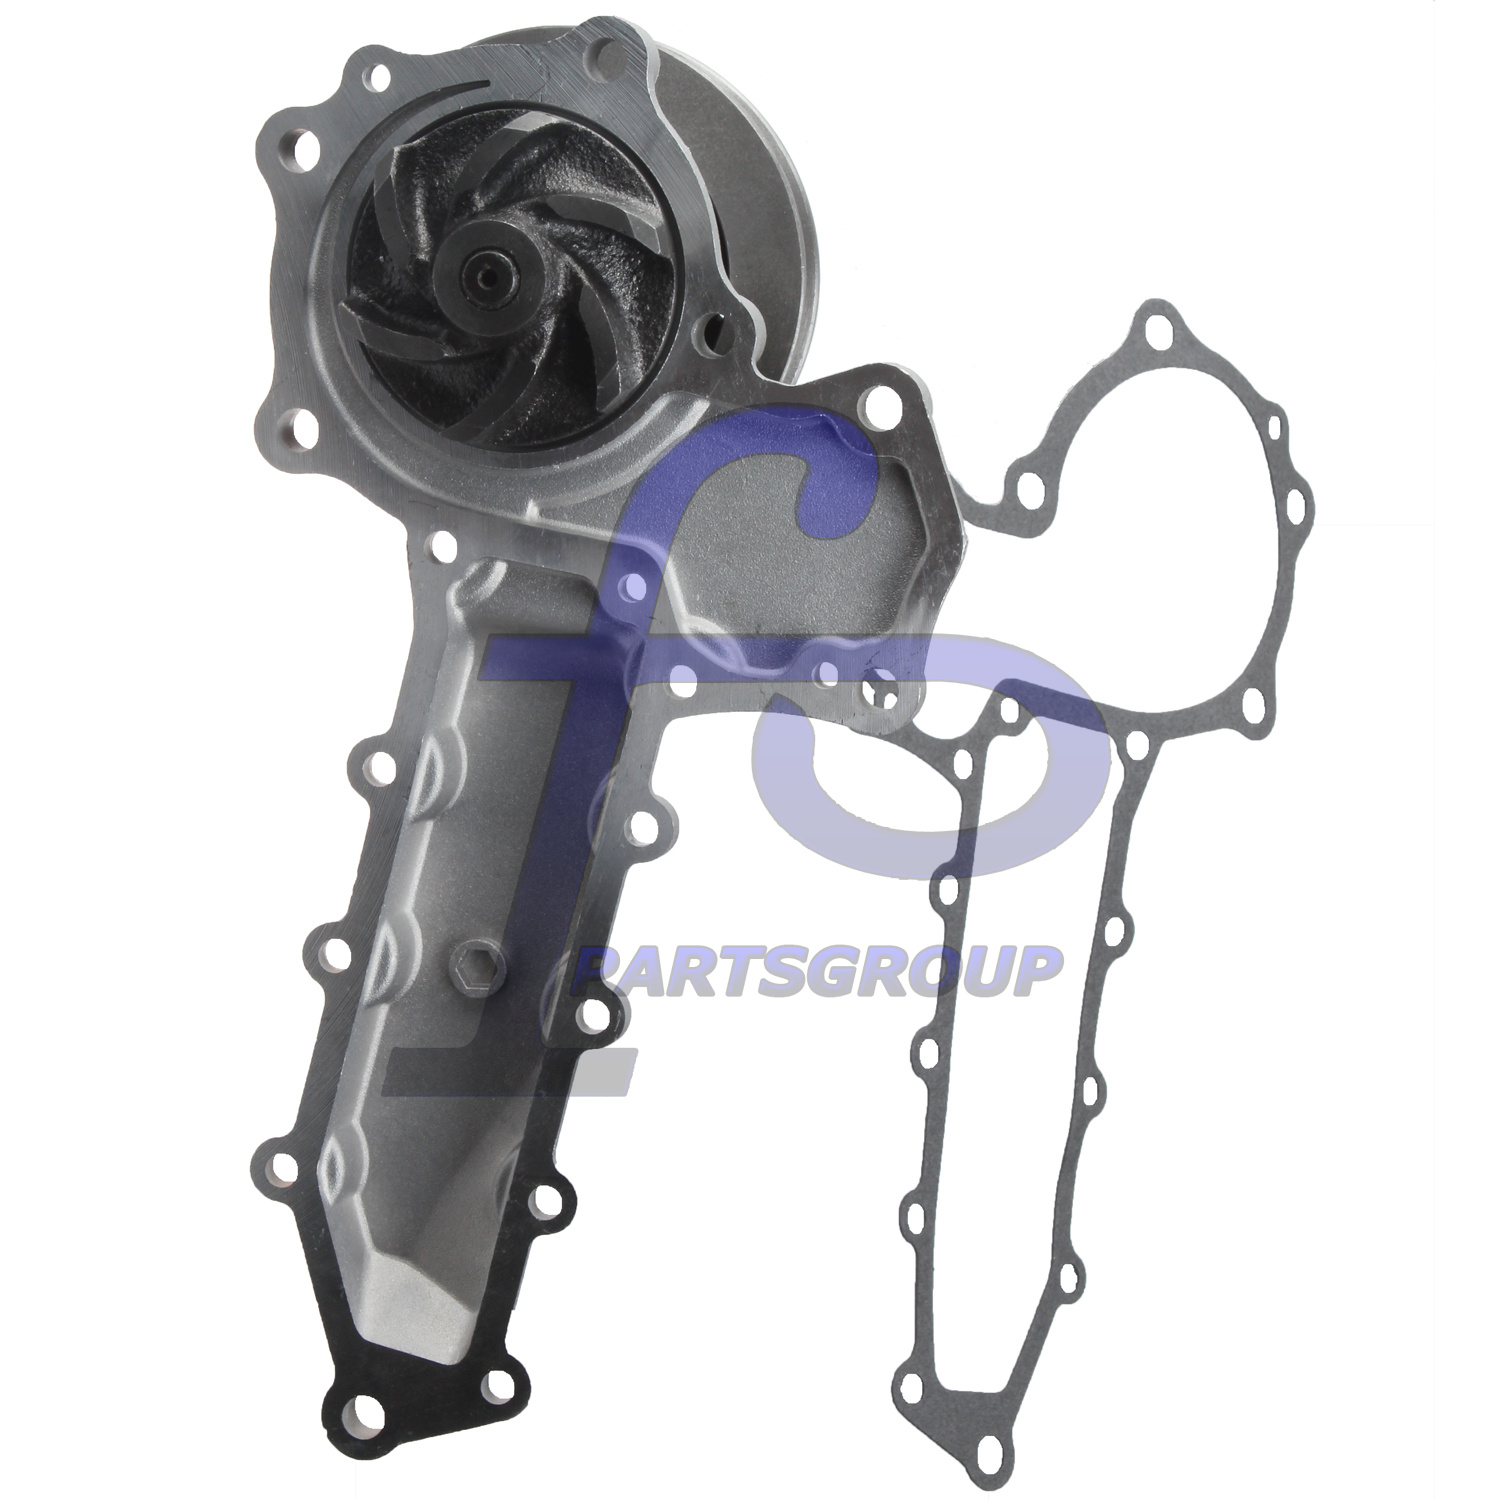 hight resolution of glow plug system query l245dt water pump 15341 73030 for kubota l245 l245dt l245dt l295